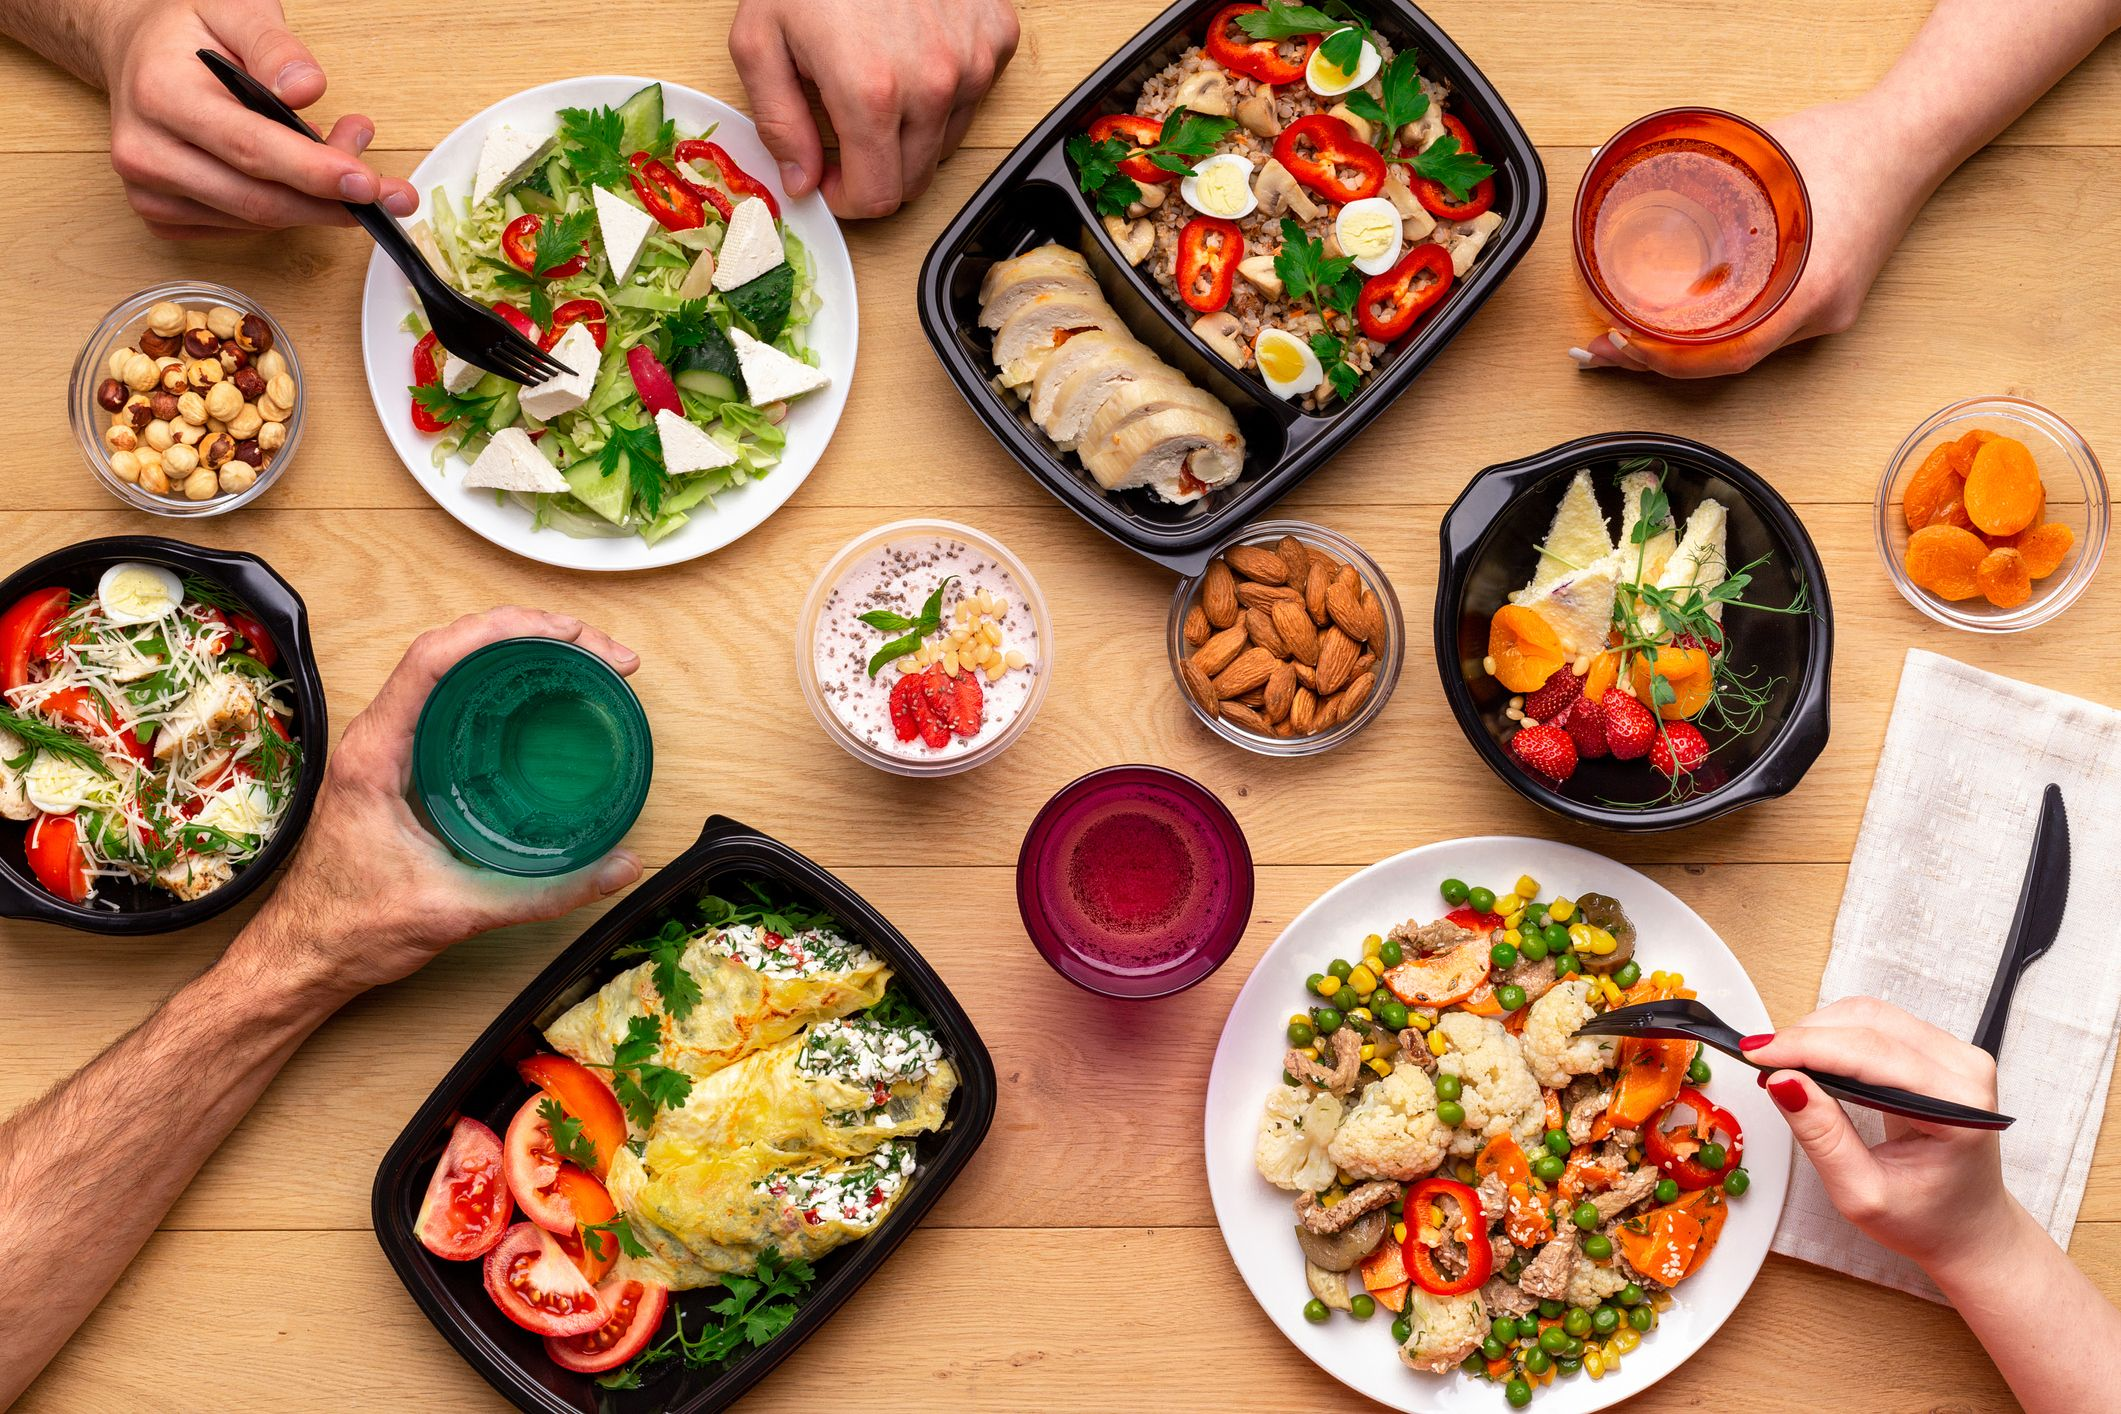 5 Keto Meal Services That Will Help Crush Your Goals